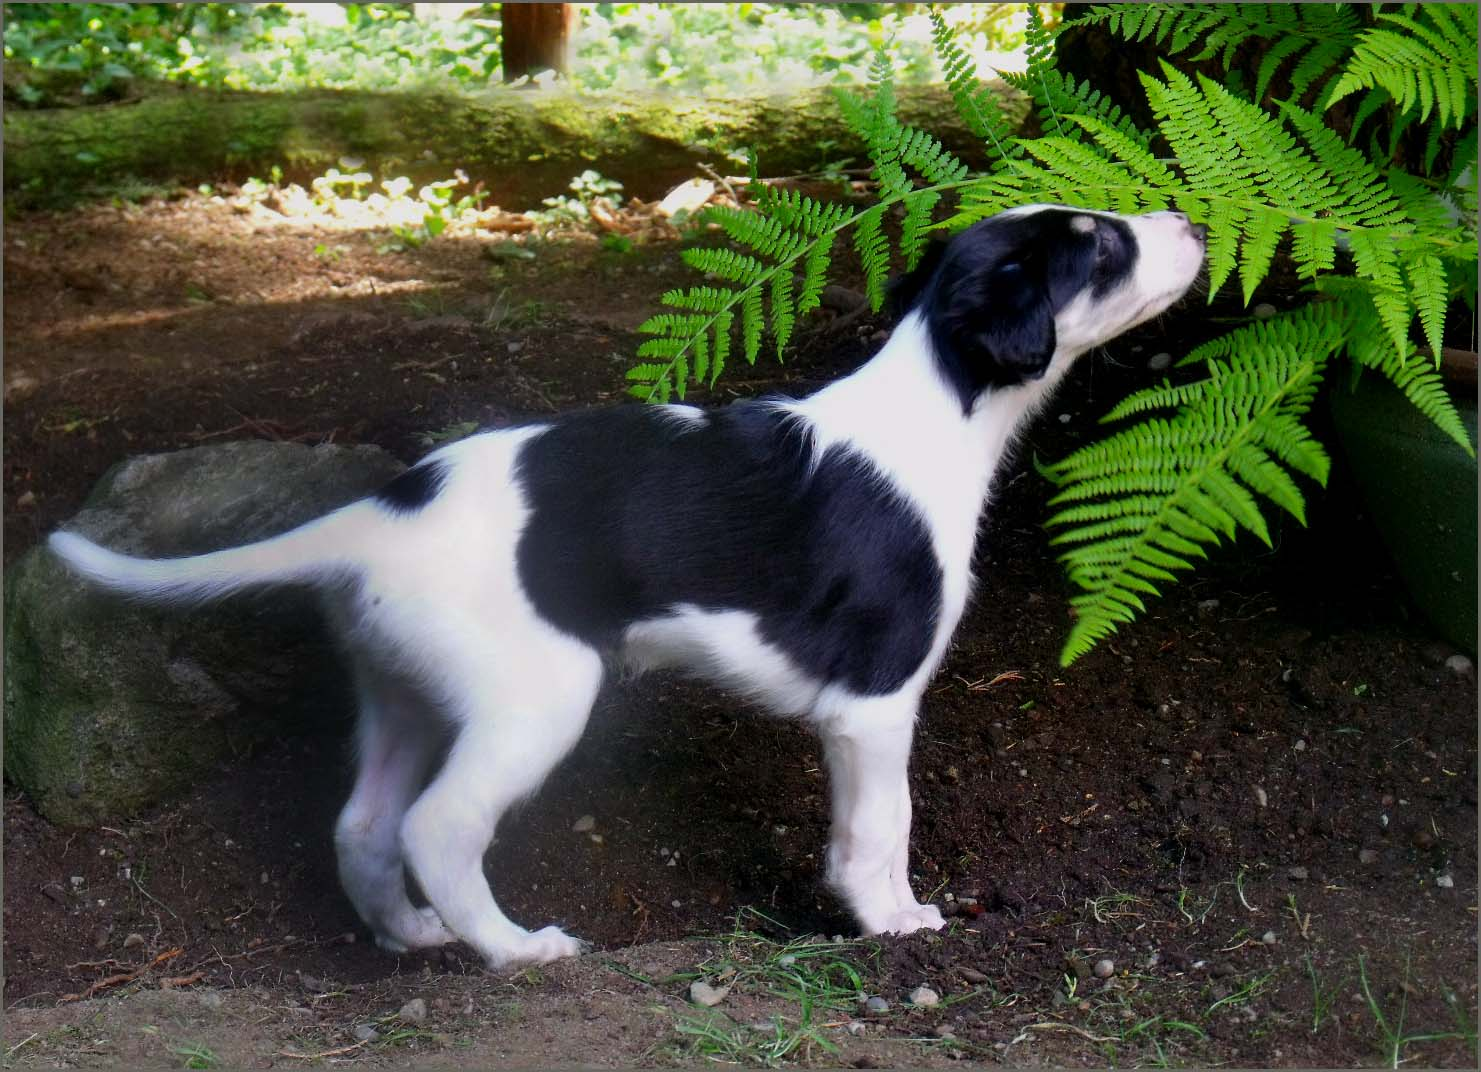 Borzoi puppy sniffing fern